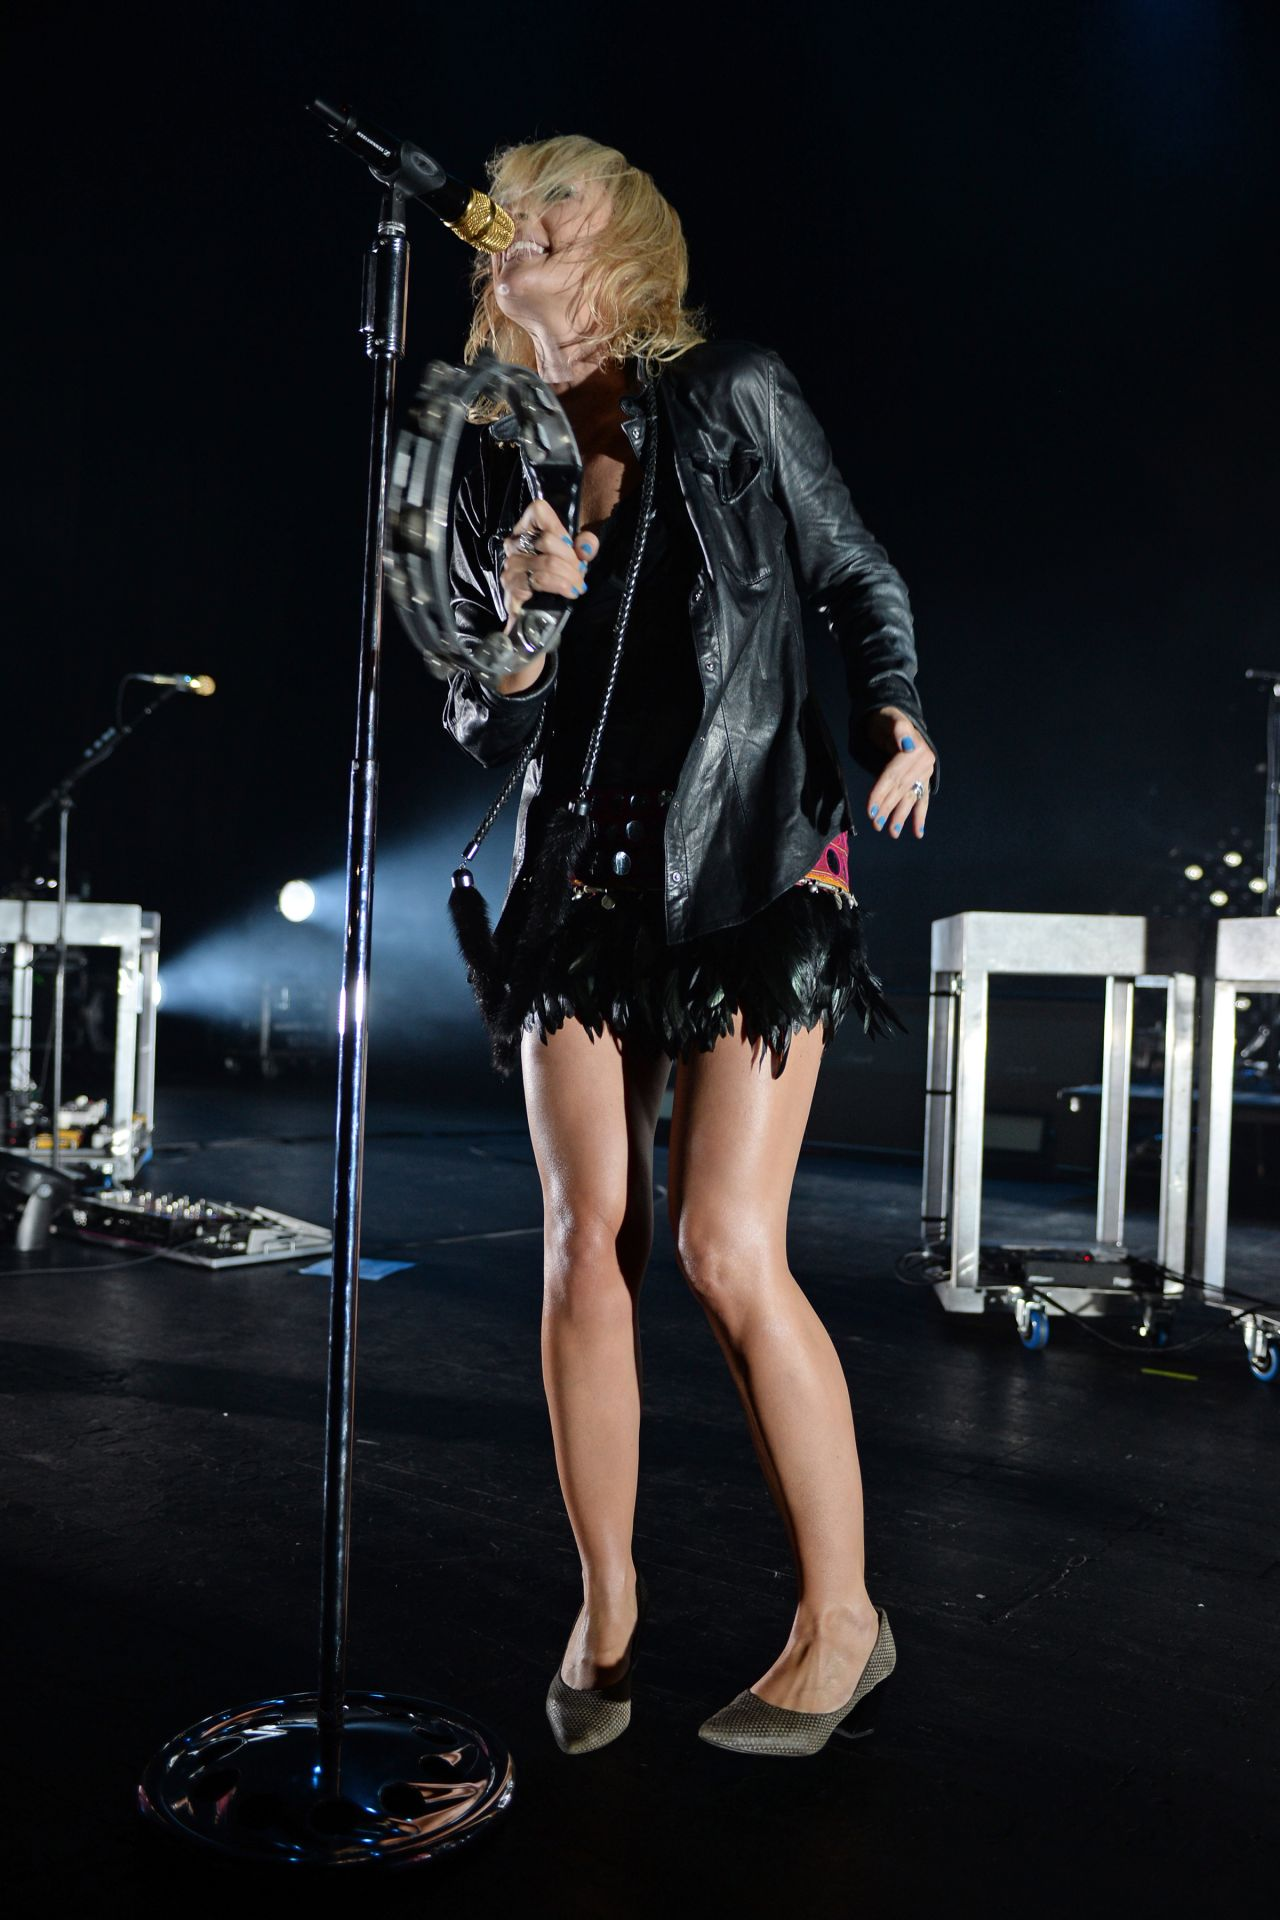 how tall is emily haines